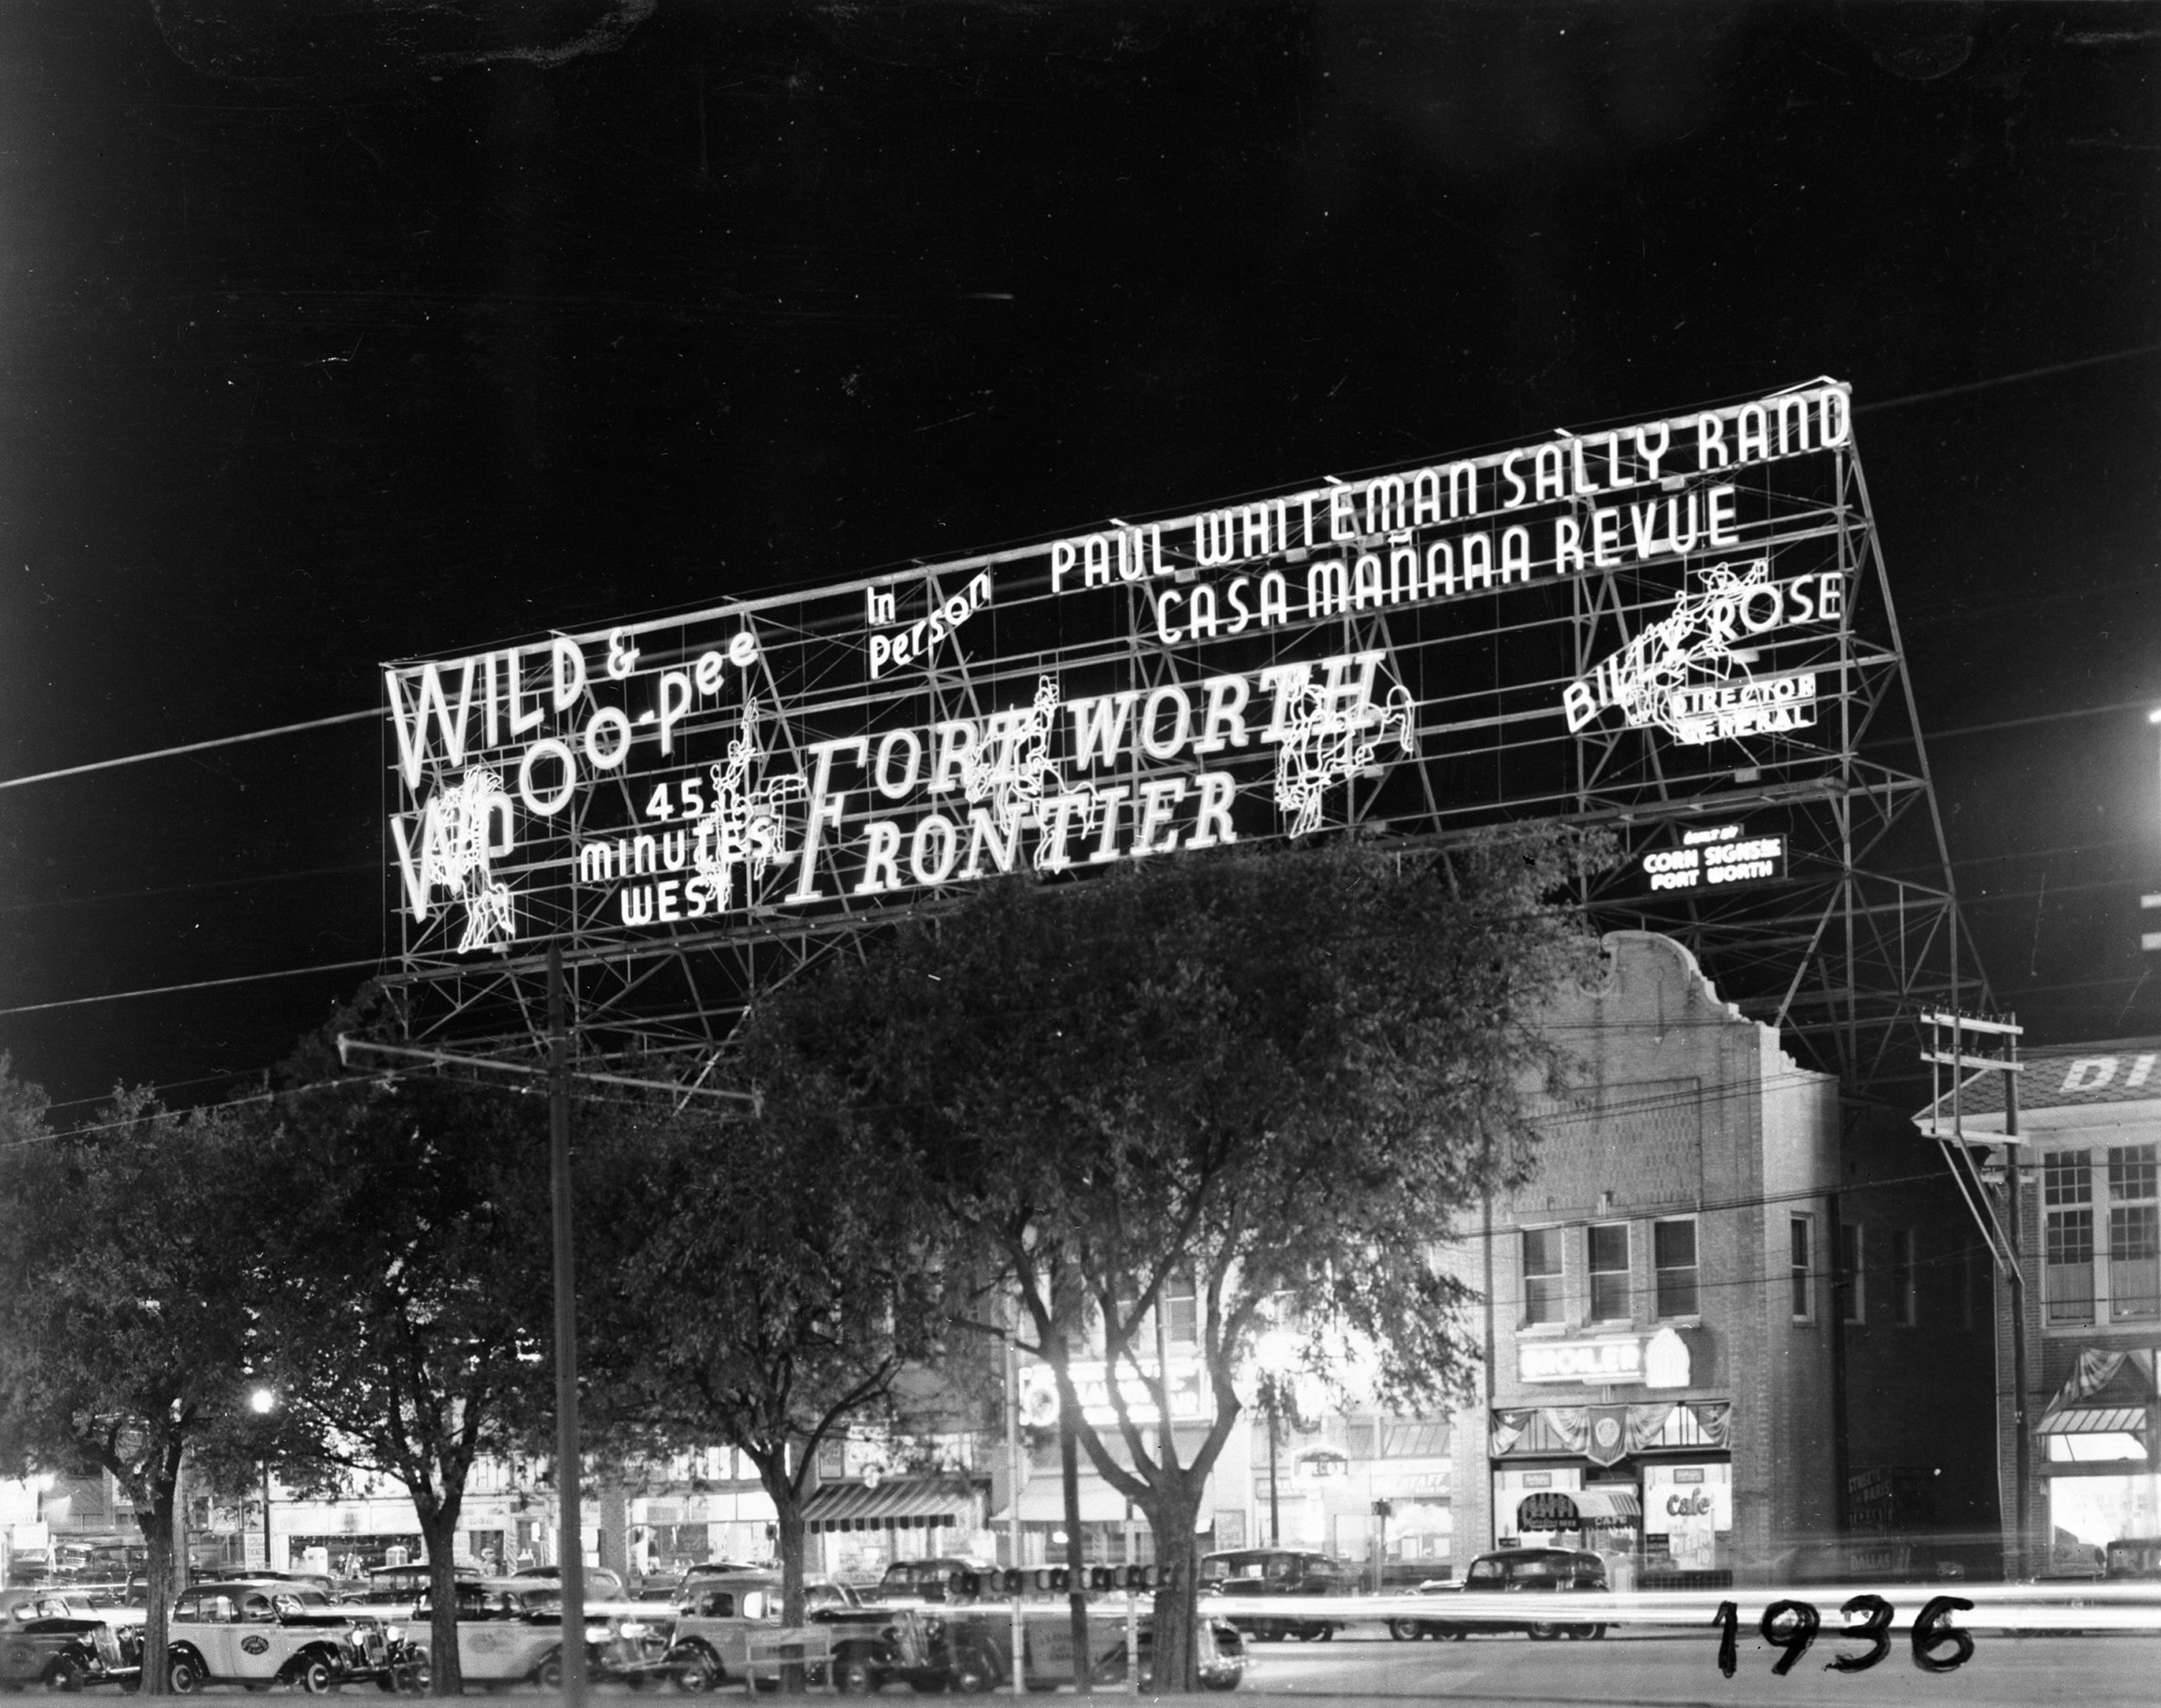 sign in lights 10000193.jpg